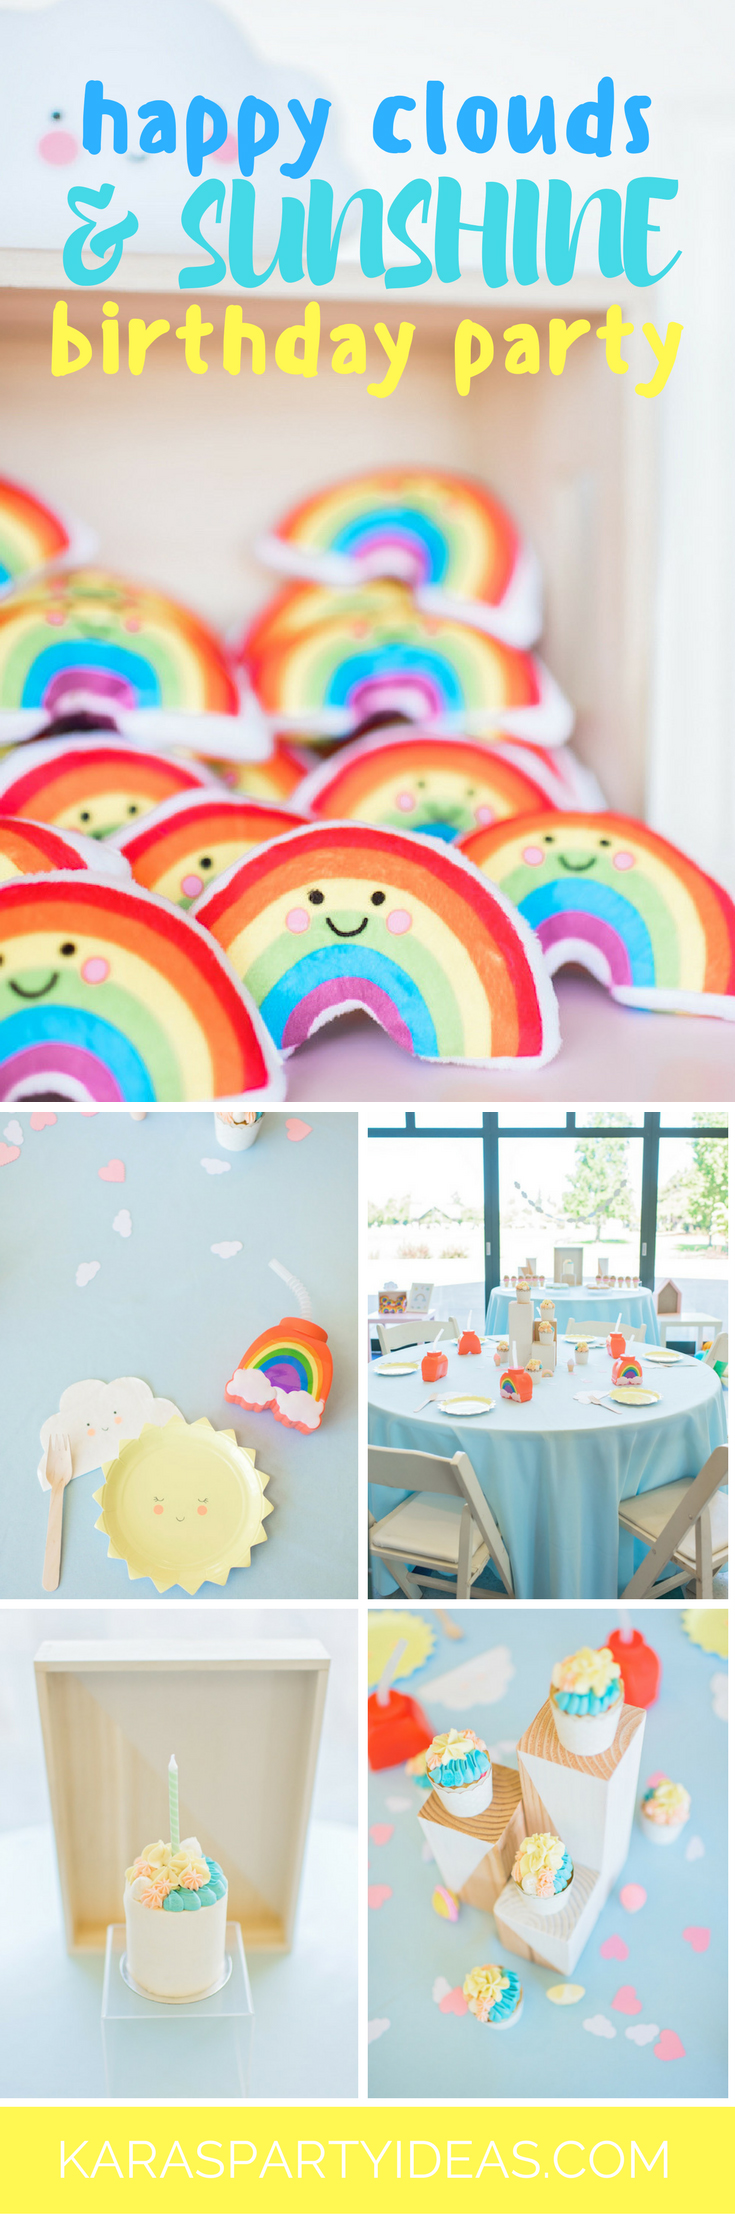 Happy Clouds and Sunshine Birthday Party via Kara's Party Ideas - KarasPartyIdeas.com